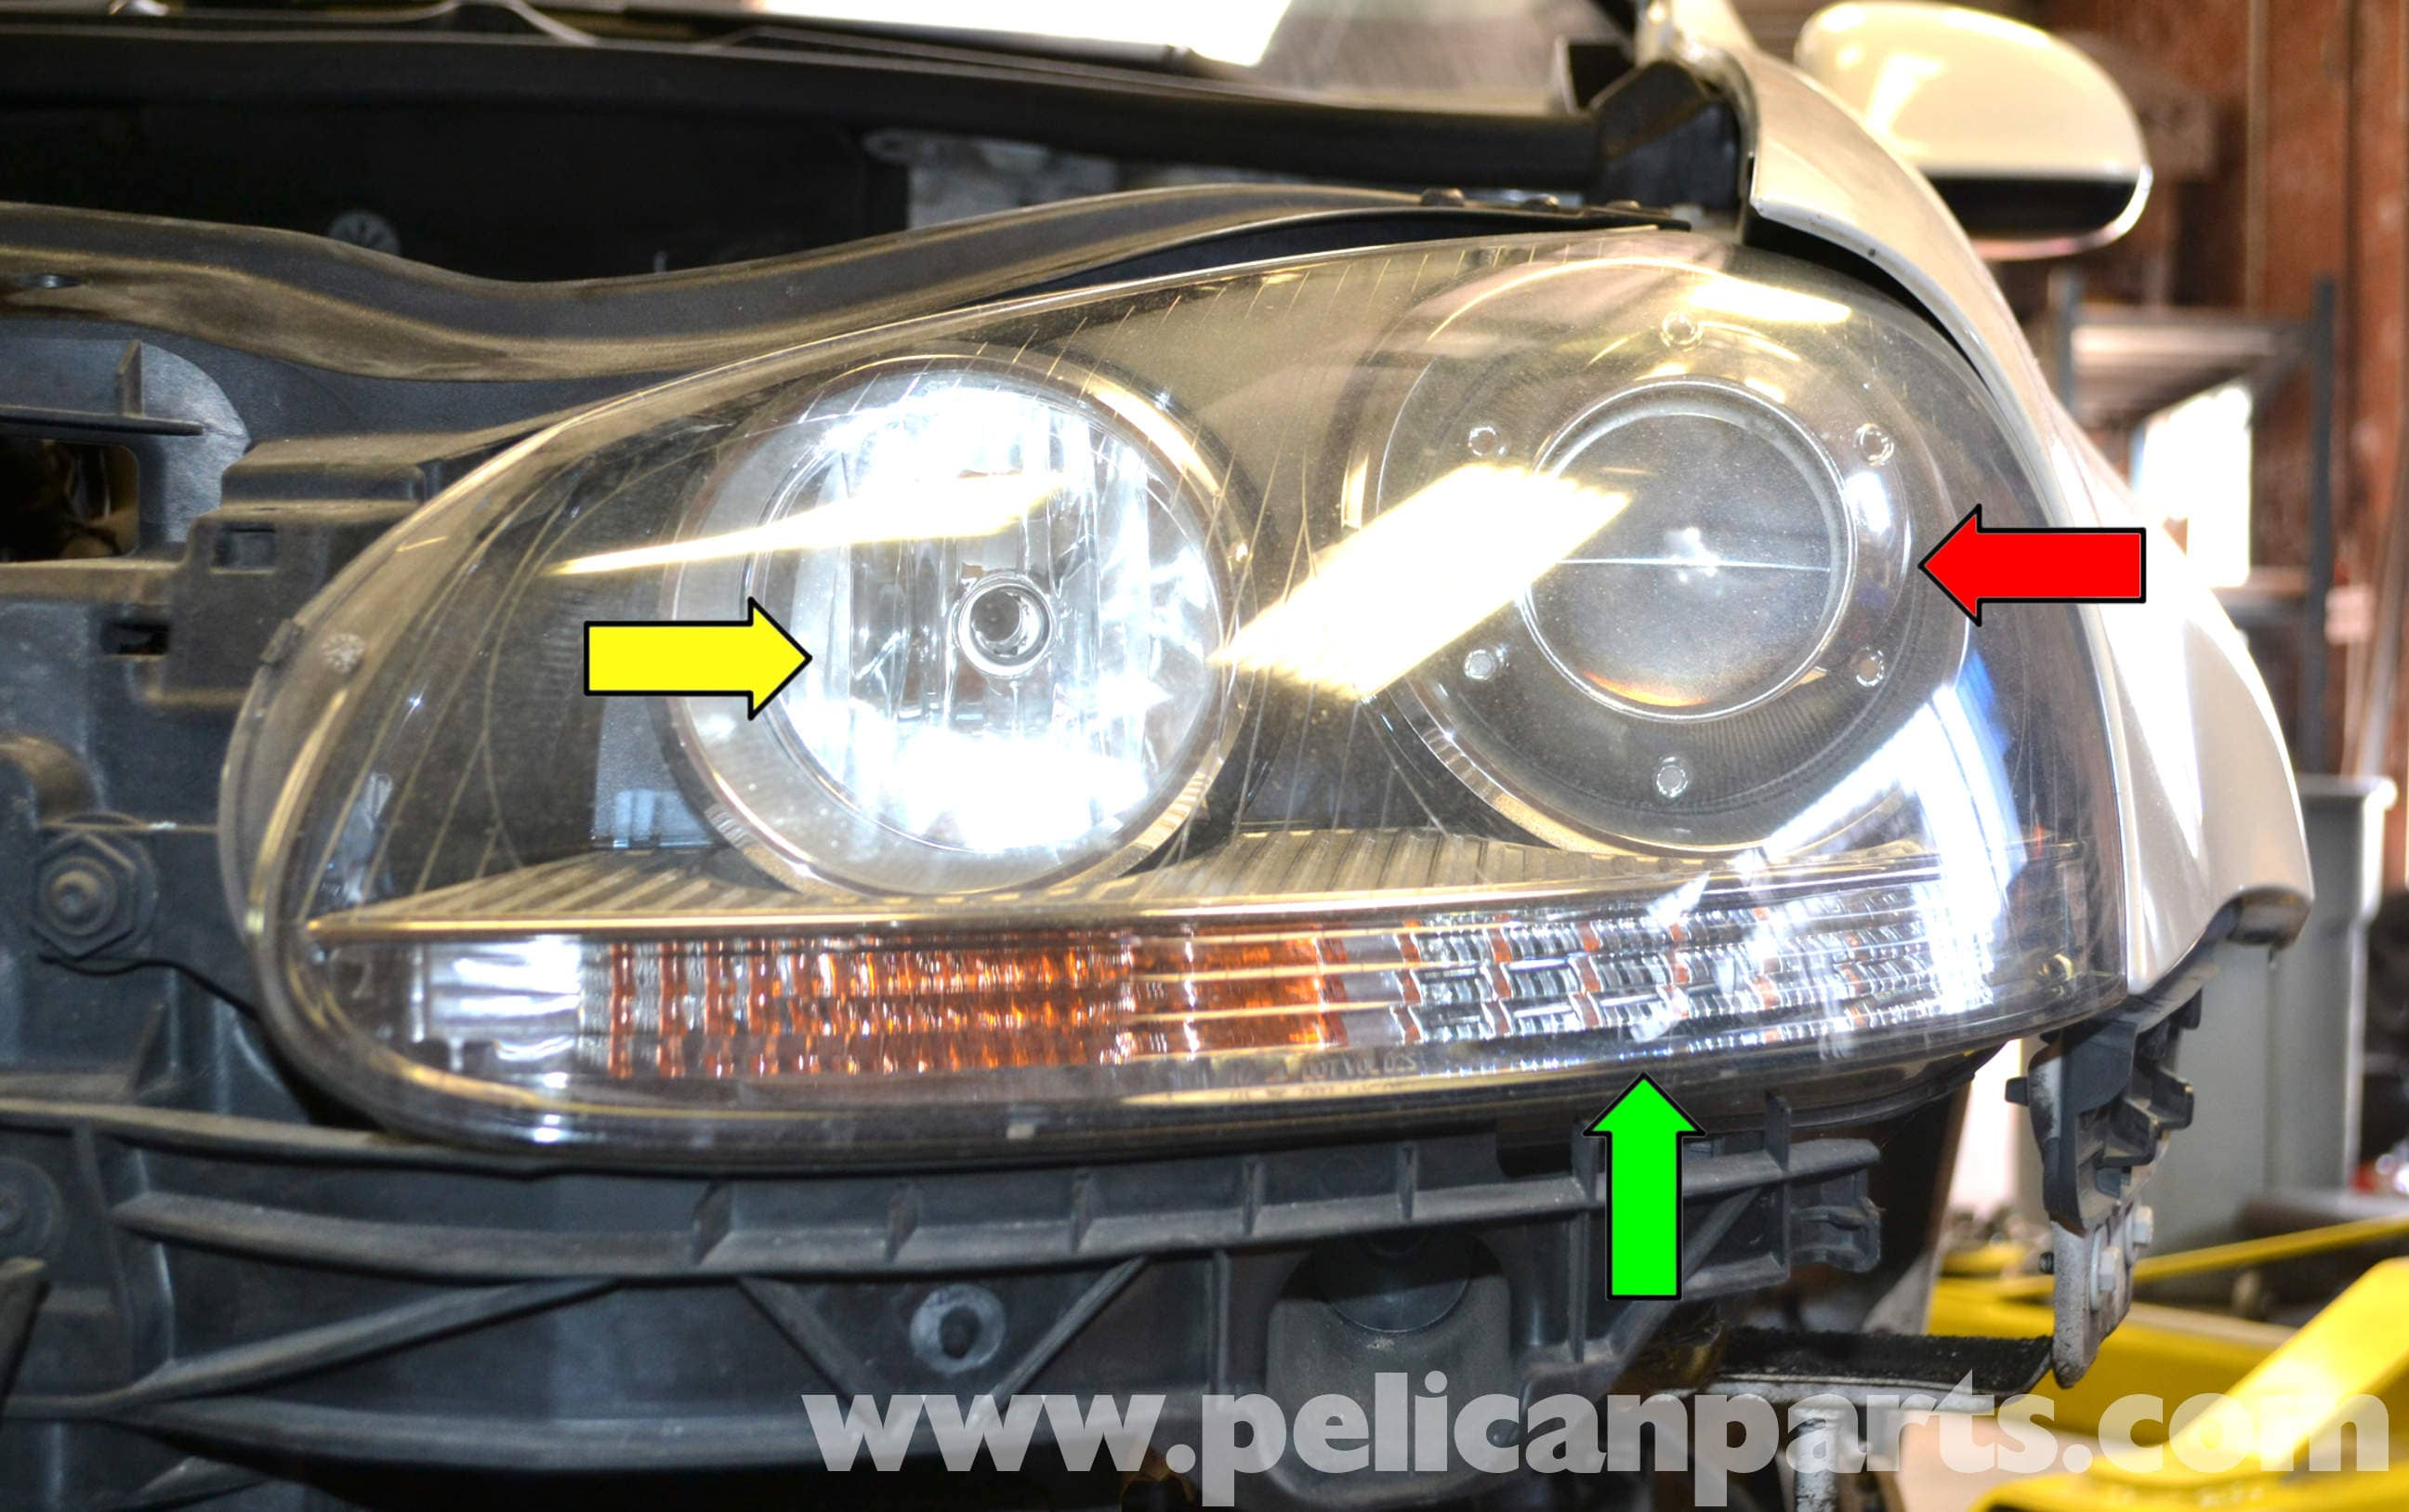 2009 jetta headlight bulb replacement